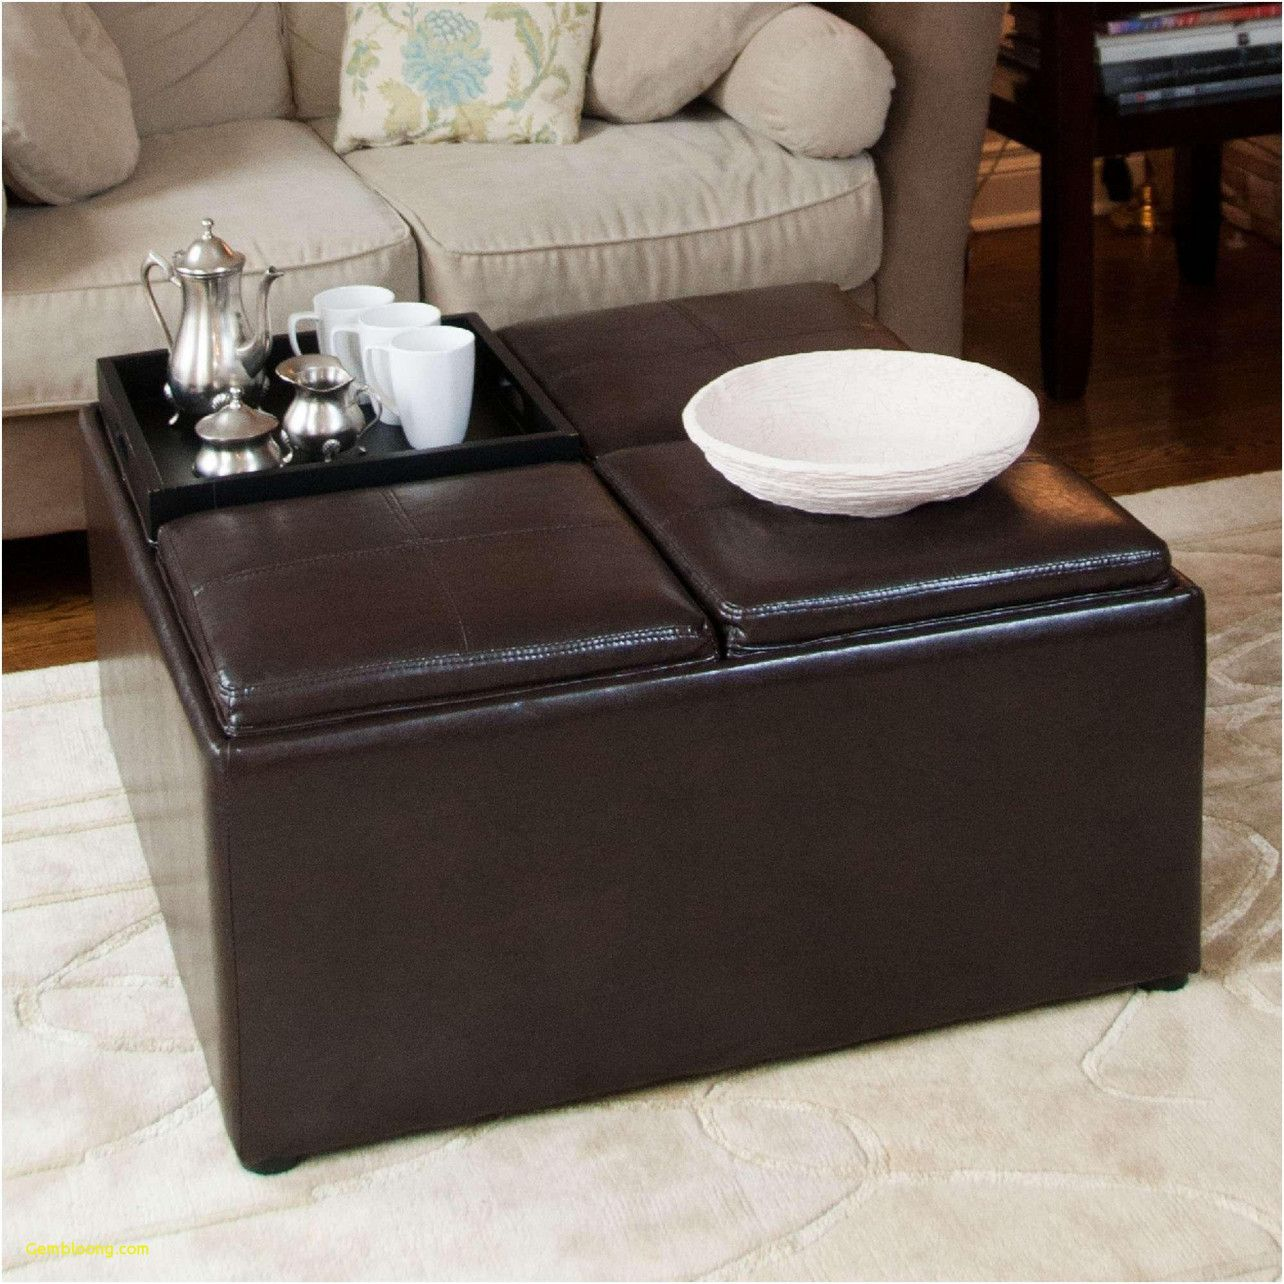 201 Best Of Ottoman As Coffee Table 2018 With Images Coffee